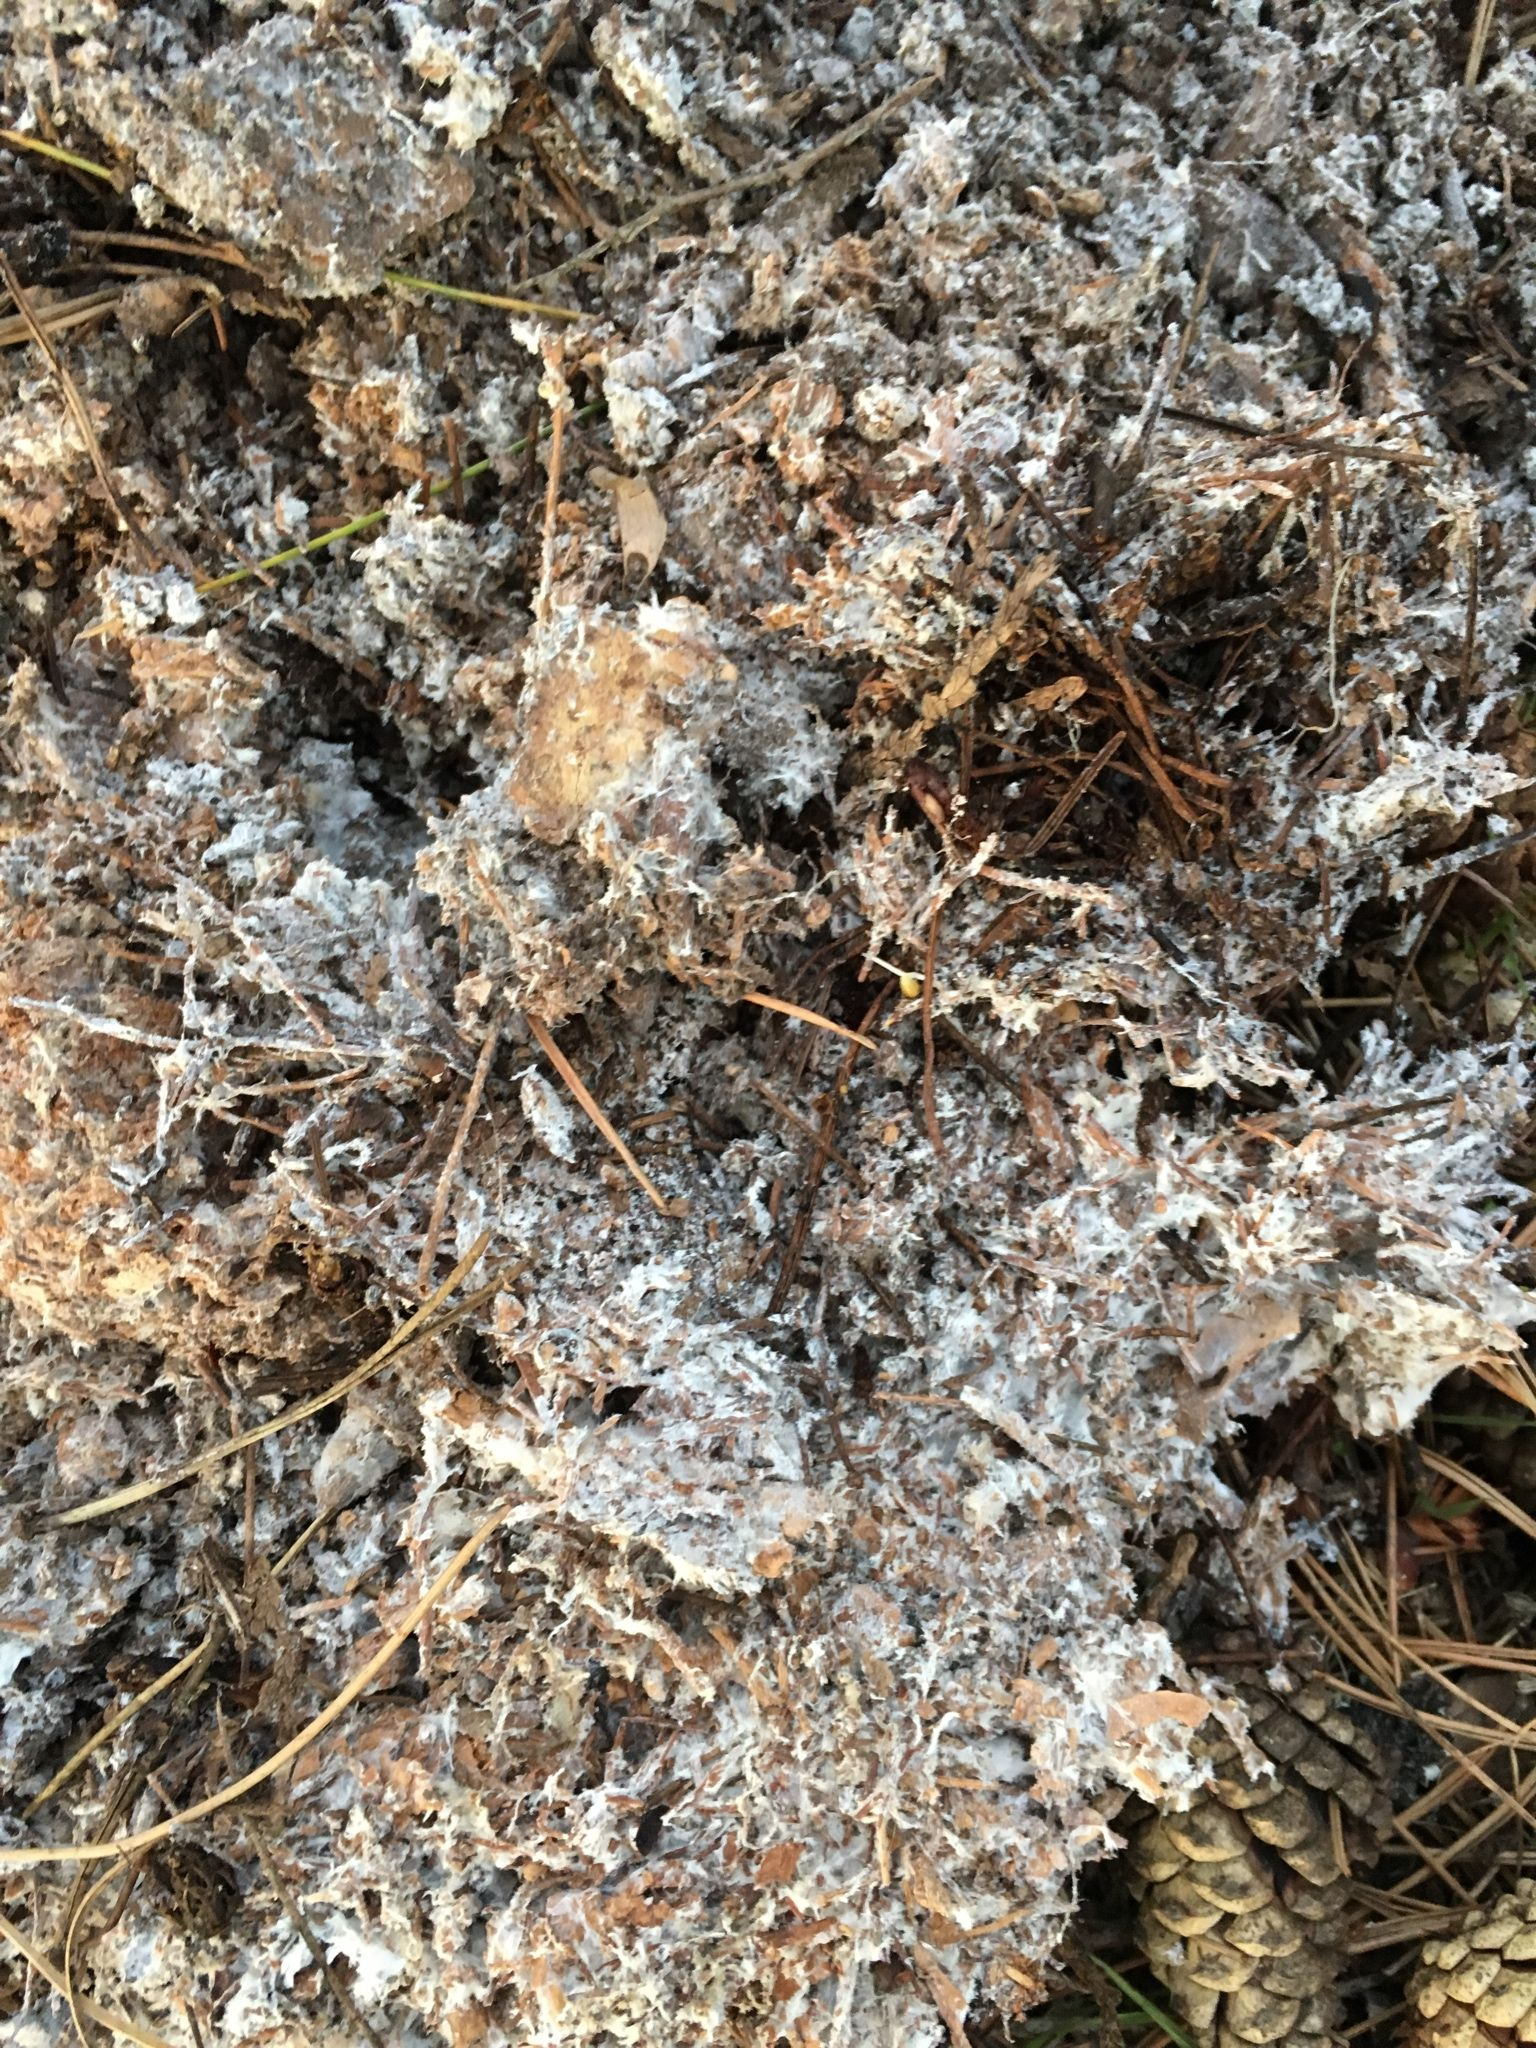 What Is This Stuff In My Soil Mold Fungus And Will It Hurt The